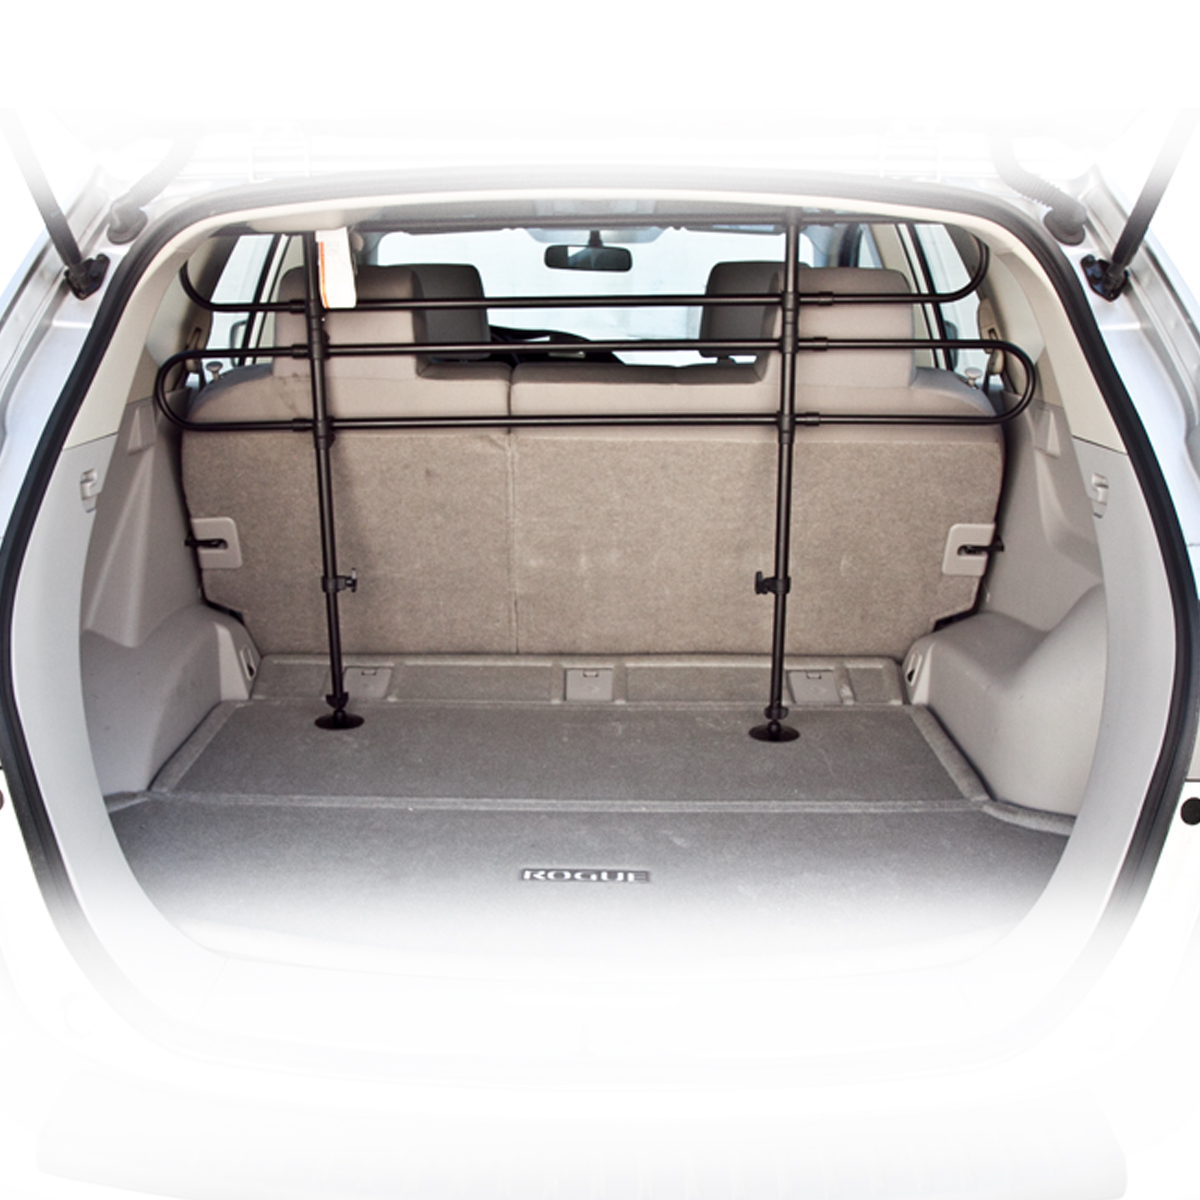 safety gate dog doggie blockers pet barrier fence suv car wagon auto stop access ebay. Black Bedroom Furniture Sets. Home Design Ideas